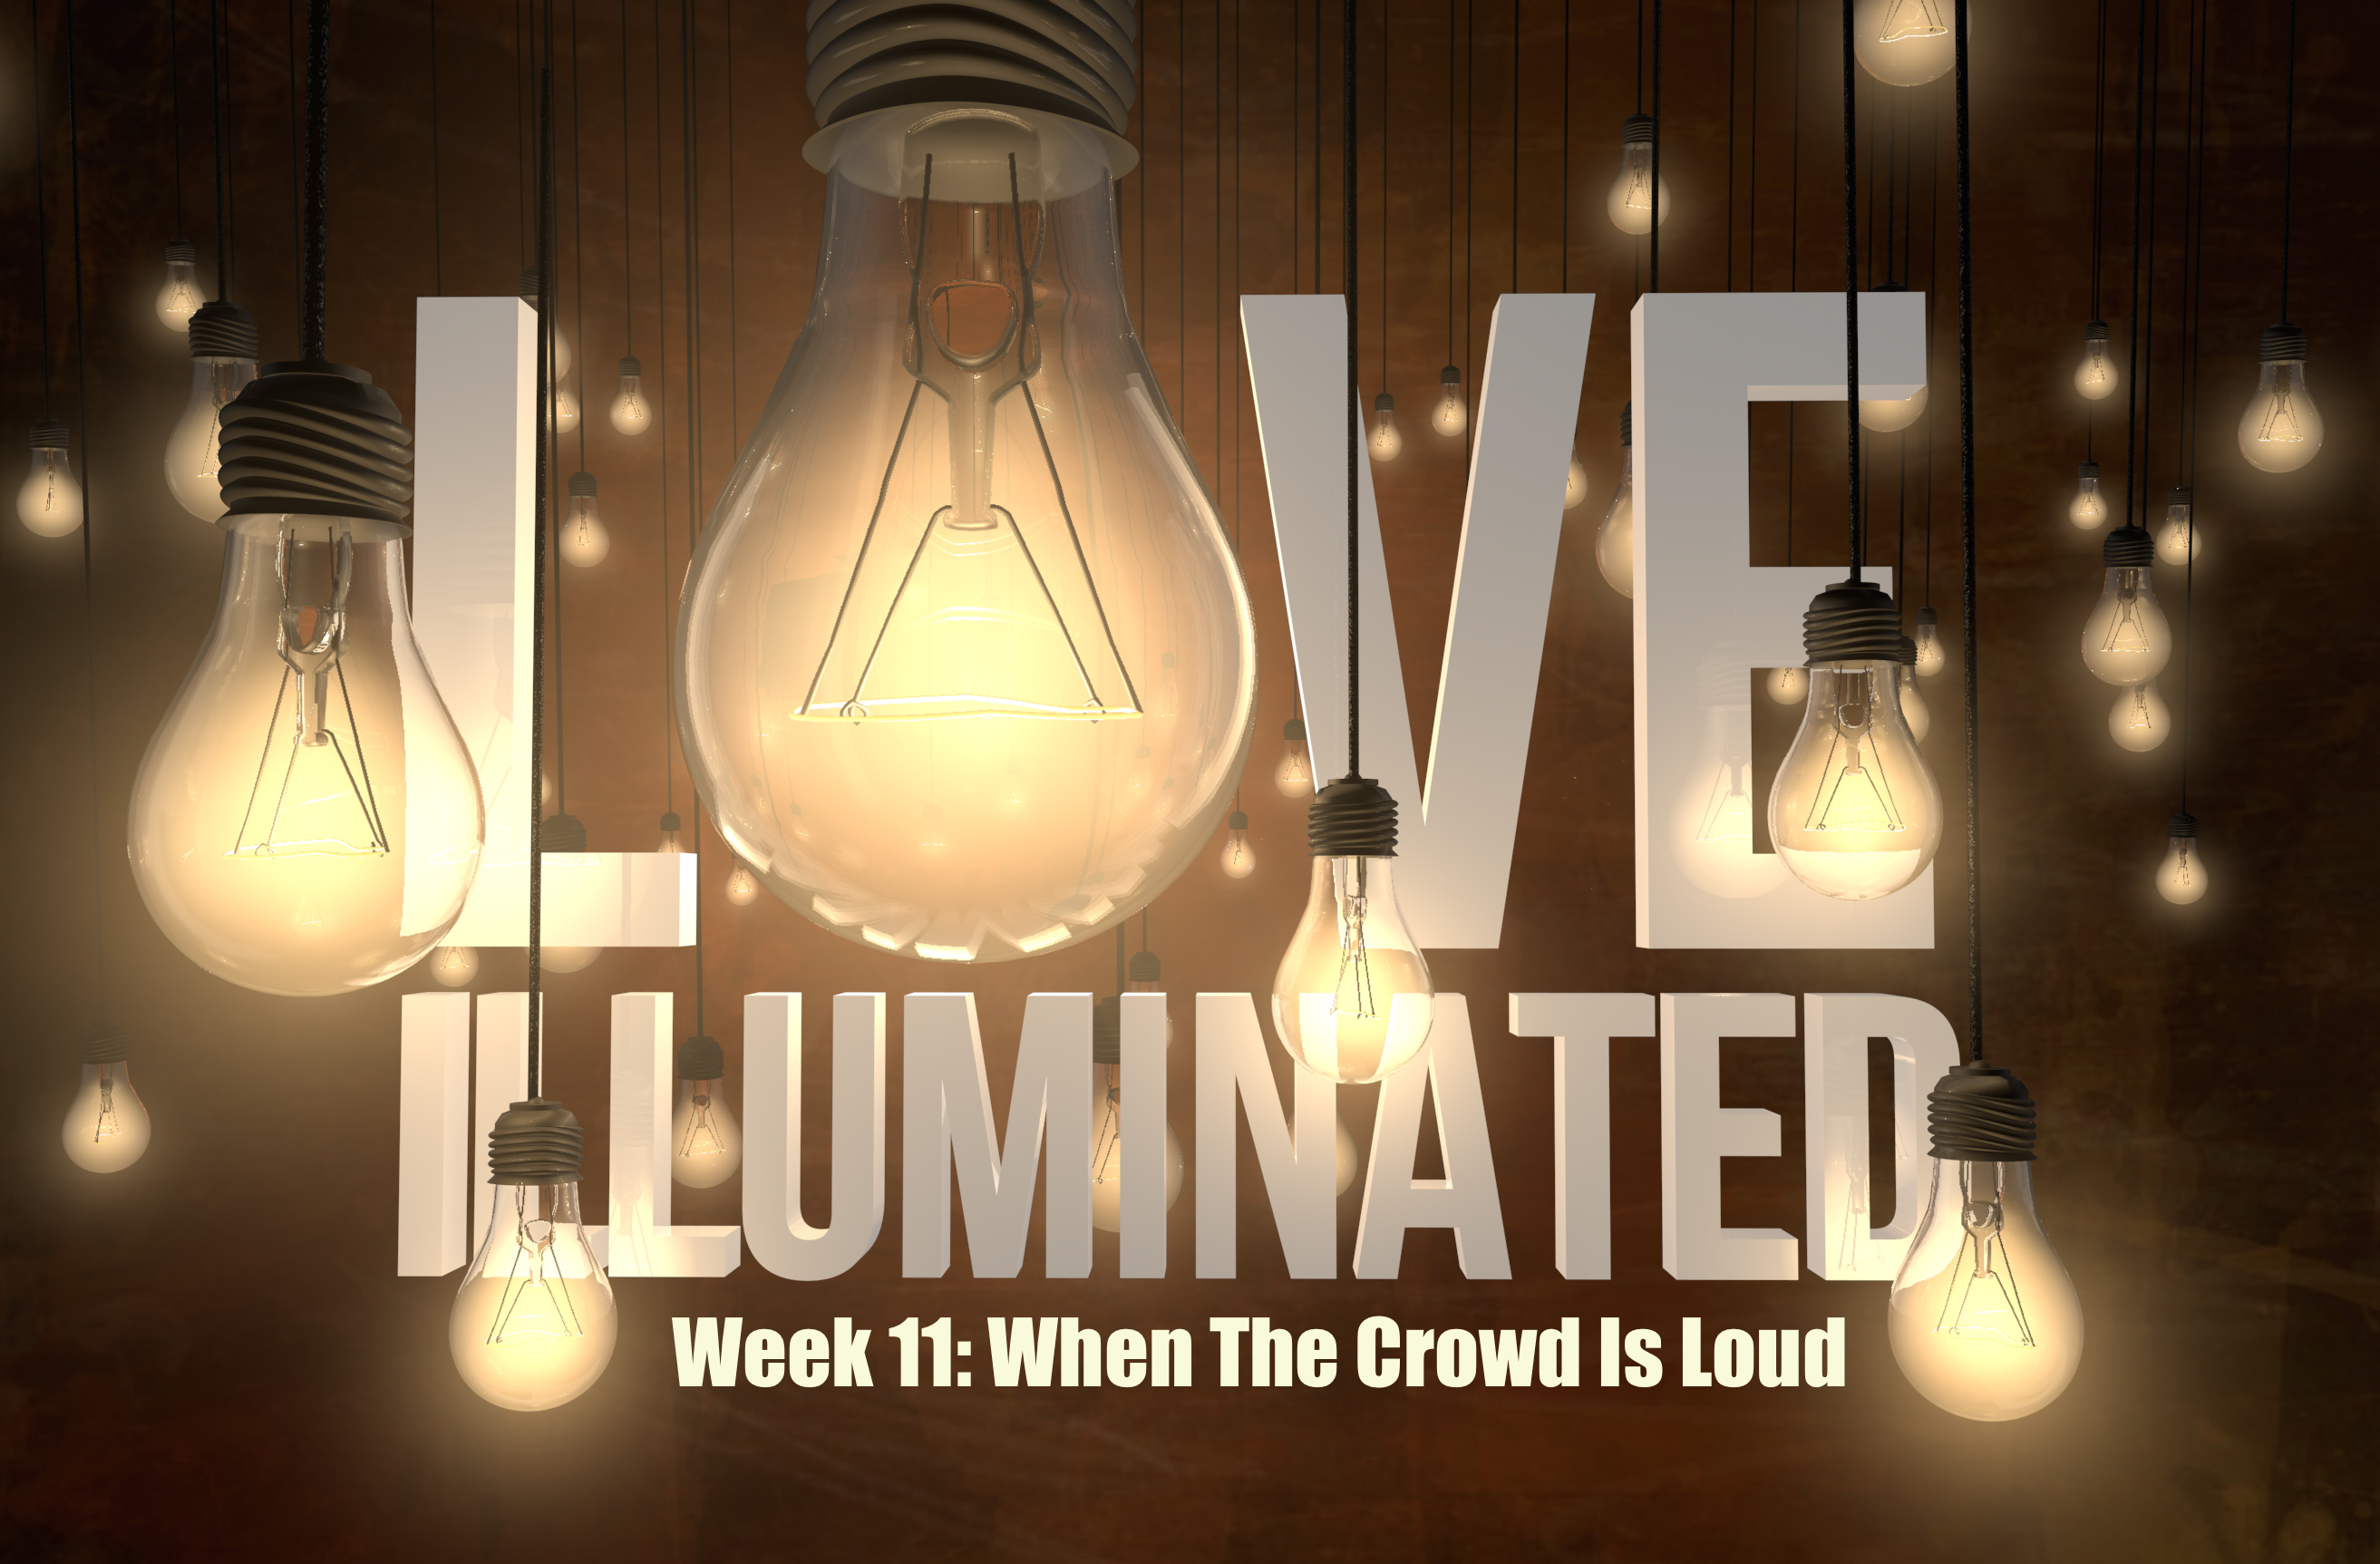 Love Illuminated, Part 11: When The Crowd Is Loud